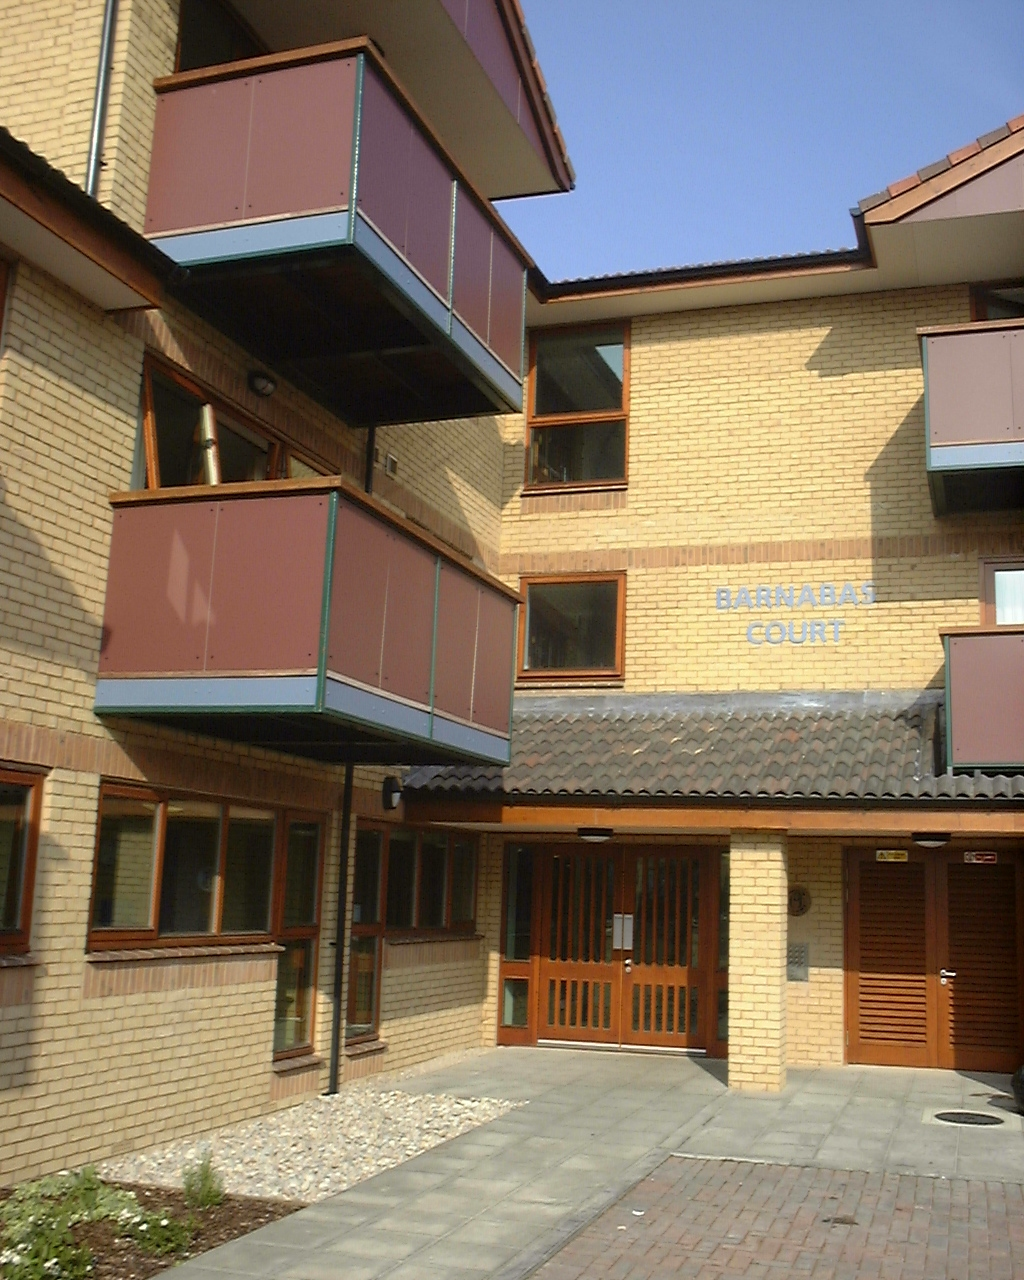 Newly opened Barnabas Court